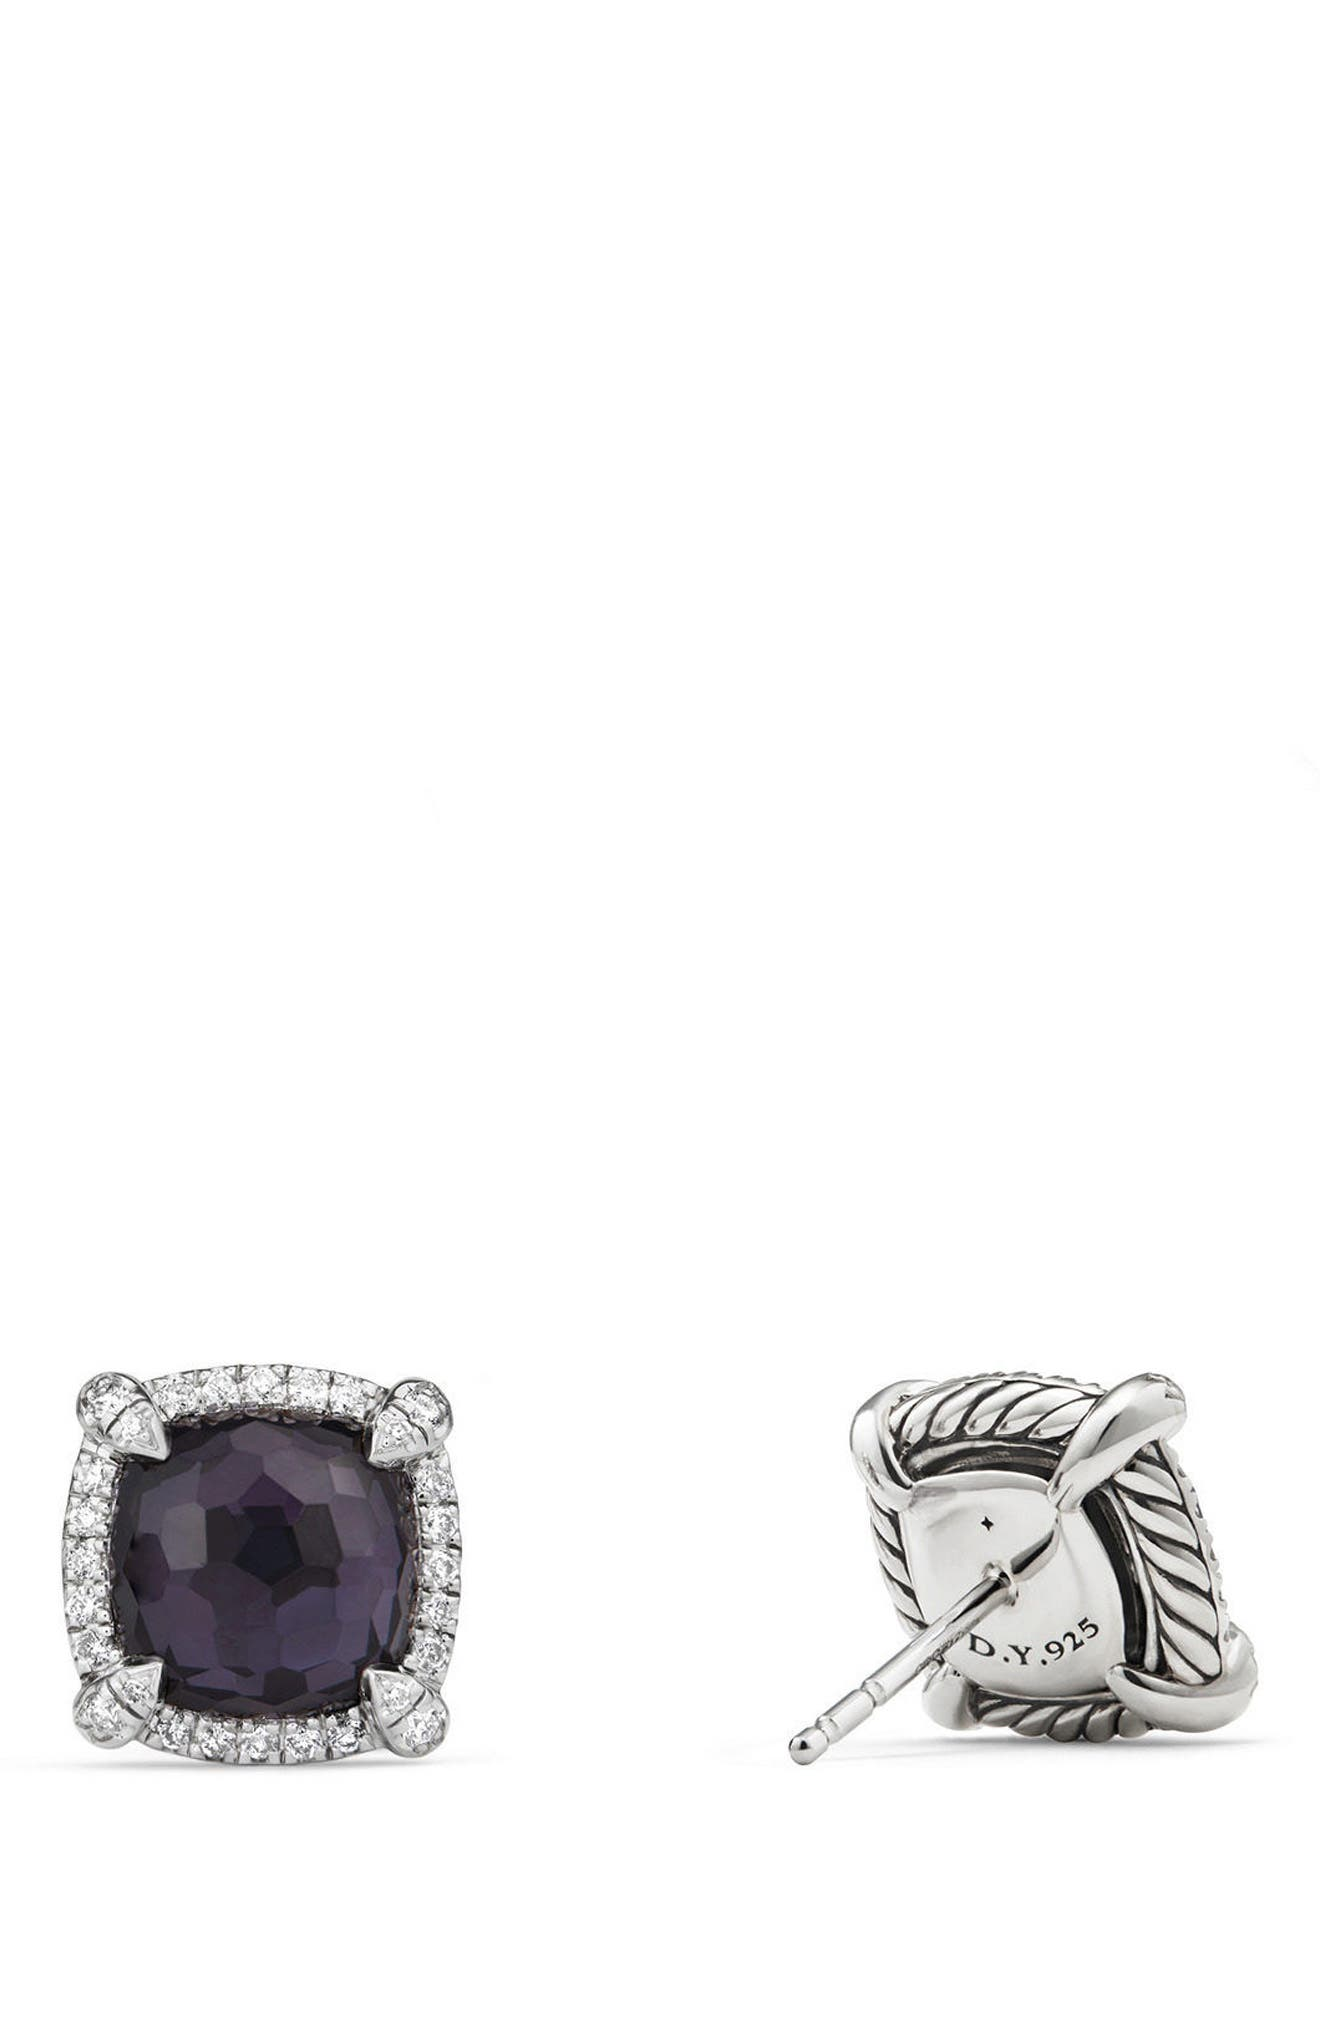 Chatelaine Pavé Bezel Earring with Black Orchid and Diamonds, 9mm,                             Alternate thumbnail 2, color,                             AMETHYST/ HEMETINE